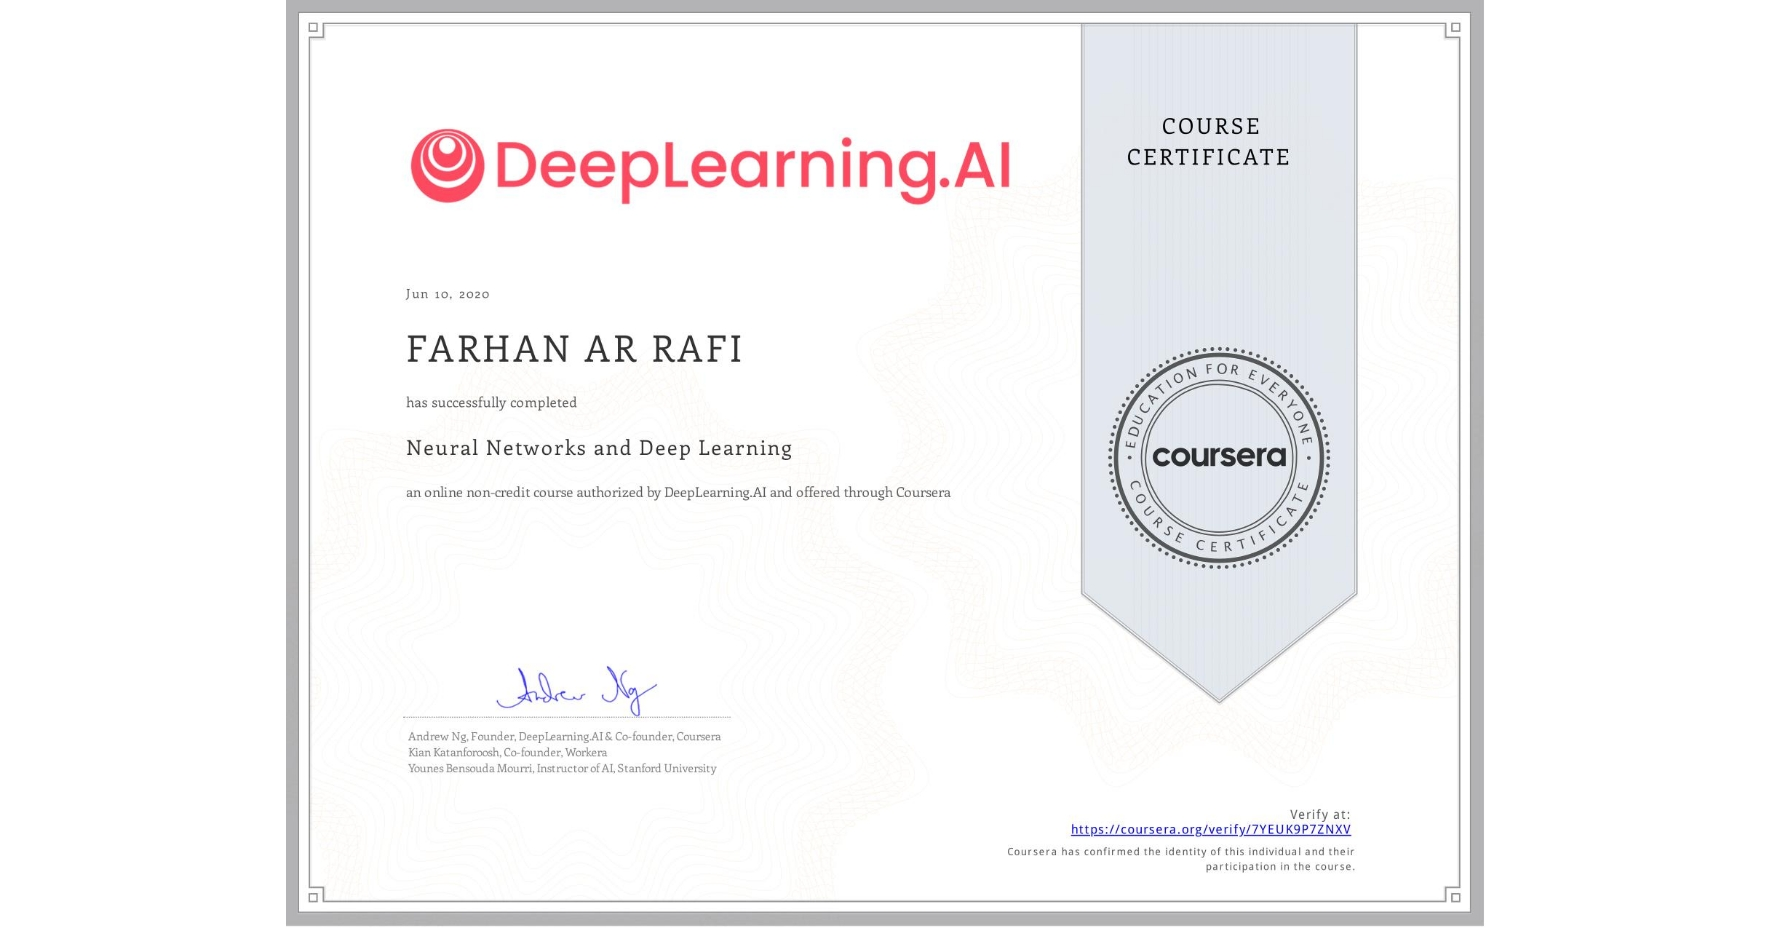 View certificate for FARHAN AR  RAFI, Neural Networks and Deep Learning, an online non-credit course authorized by DeepLearning.AI and offered through Coursera